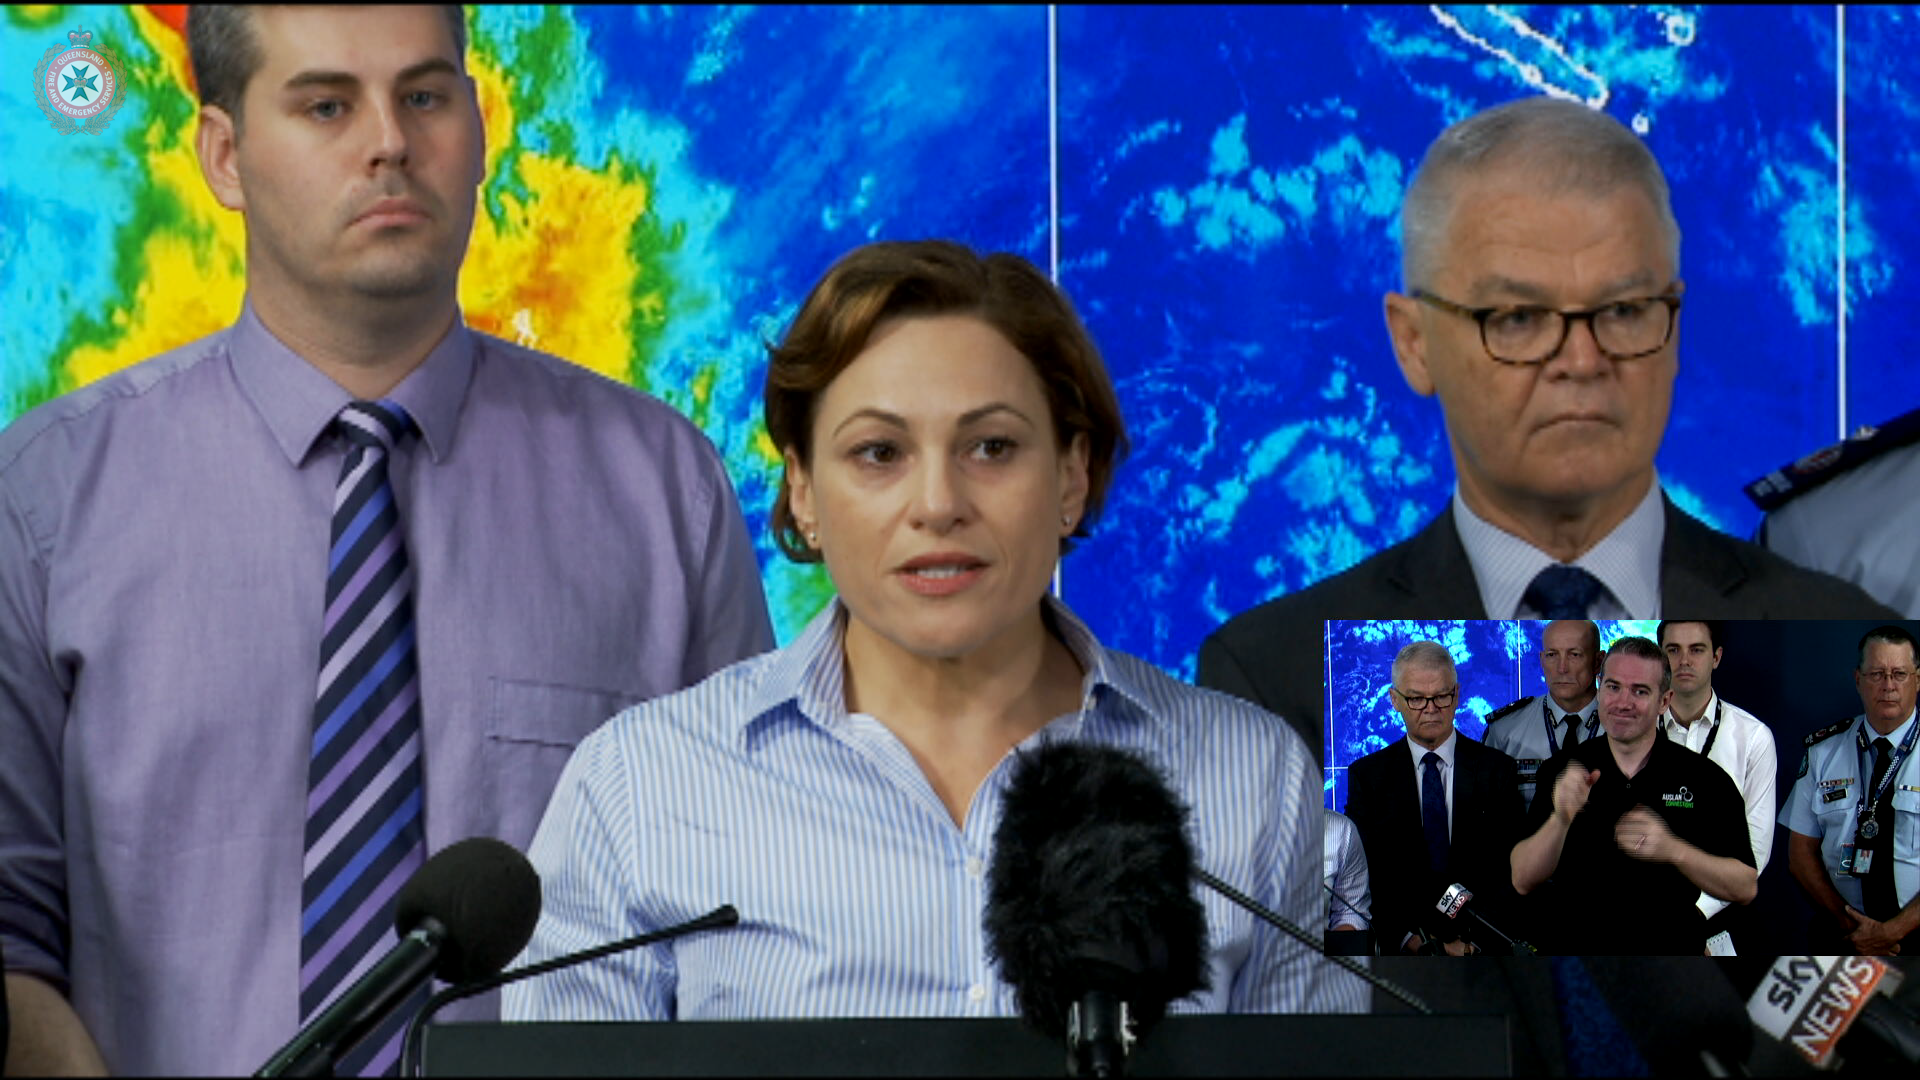 Queensland Deputy Premier and Emergency Services update on severe weather conditions in the state, particularly in relation to the closure of schools.